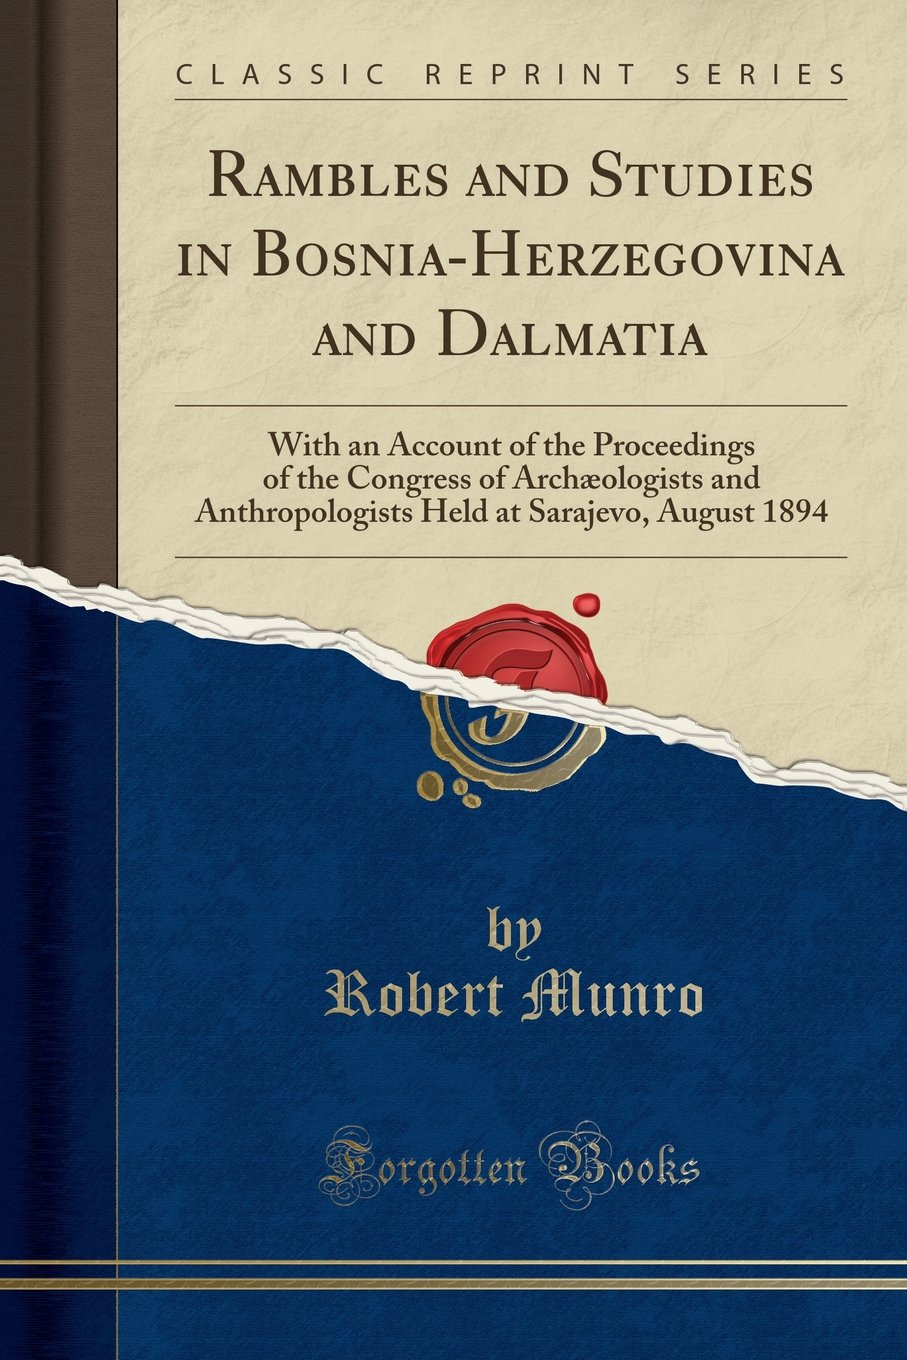 Rambles and Studies in Bosnia-Herzegovina and Dalmatia: With an Account of the Proceedings of the Congress of Archæologists and Anthropologists Held at Sarajevo, August 1894 (Classic Reprint) pdf